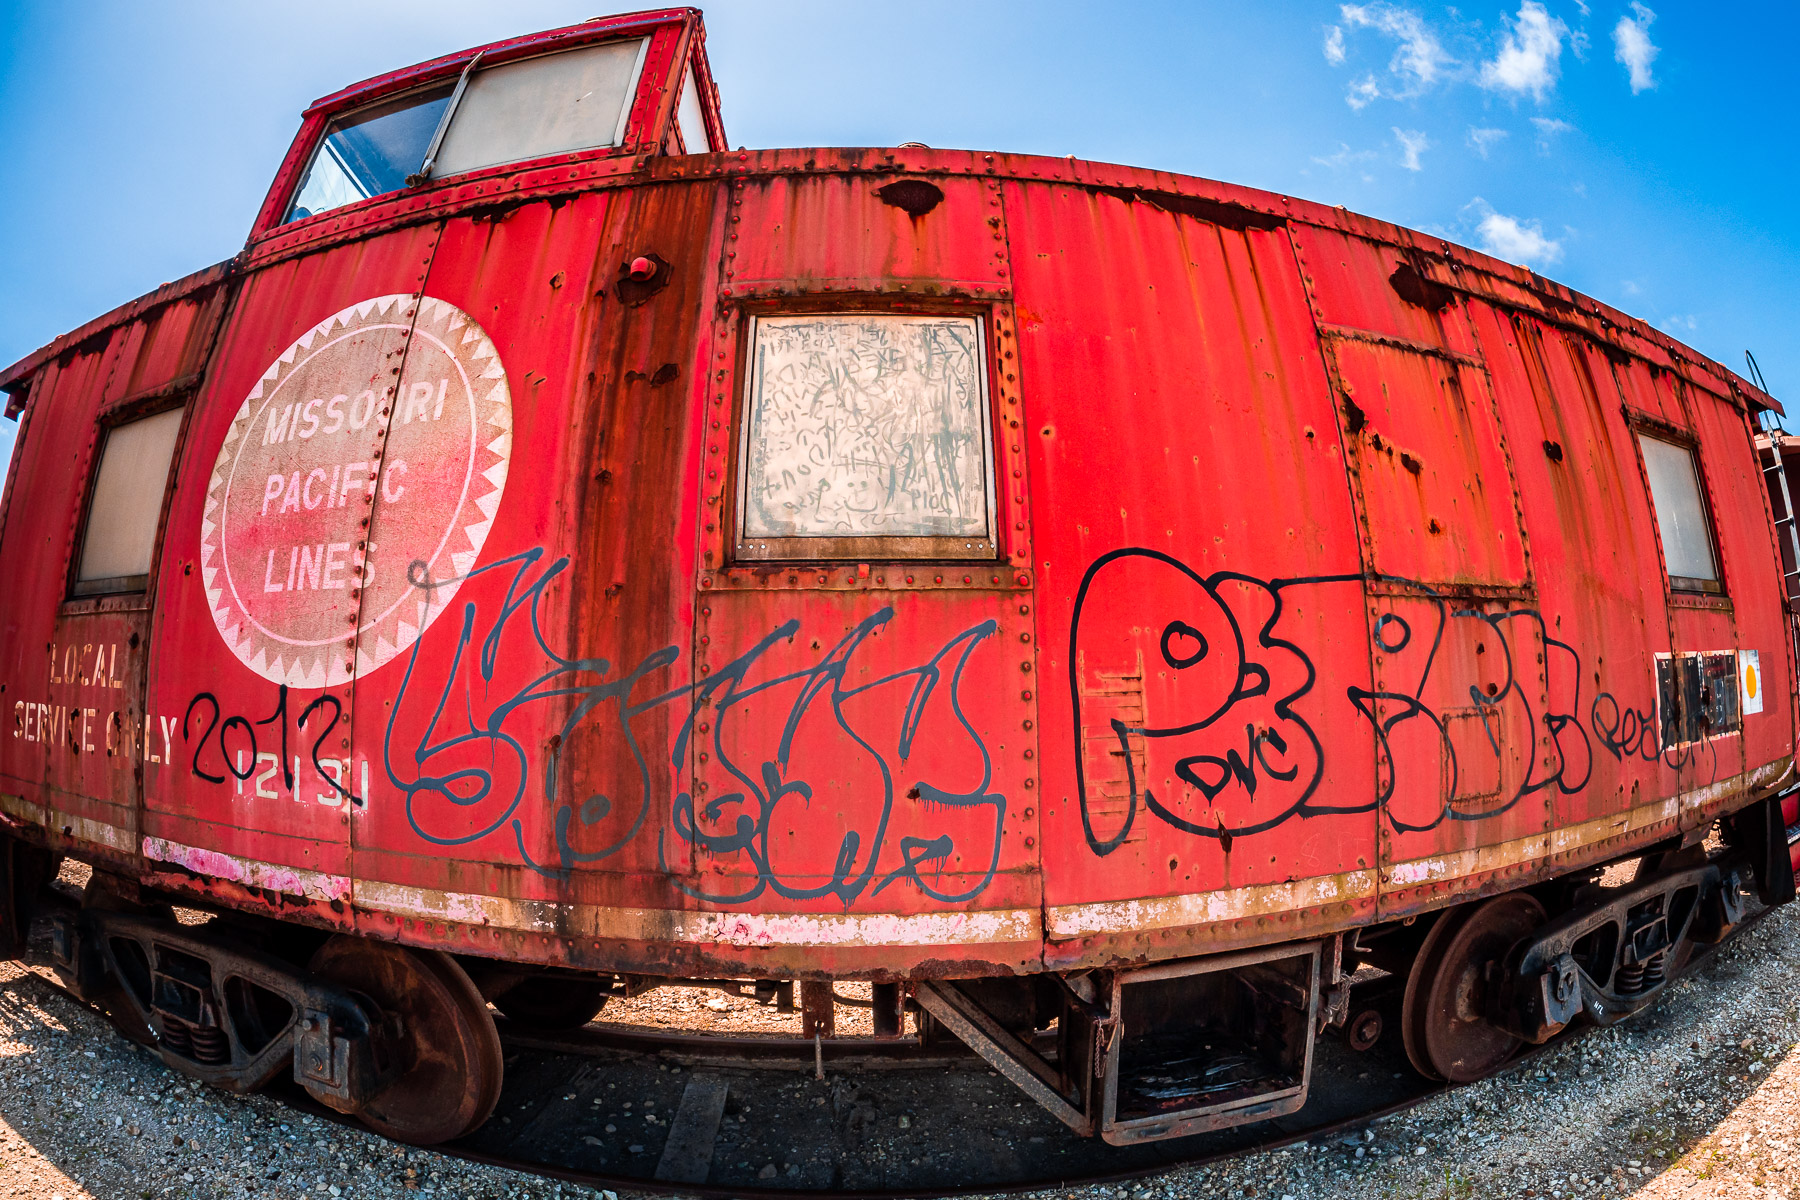 A 1942 Missouri Pacific caboose in the collection of the Galveston Railroad Museum, Texas.